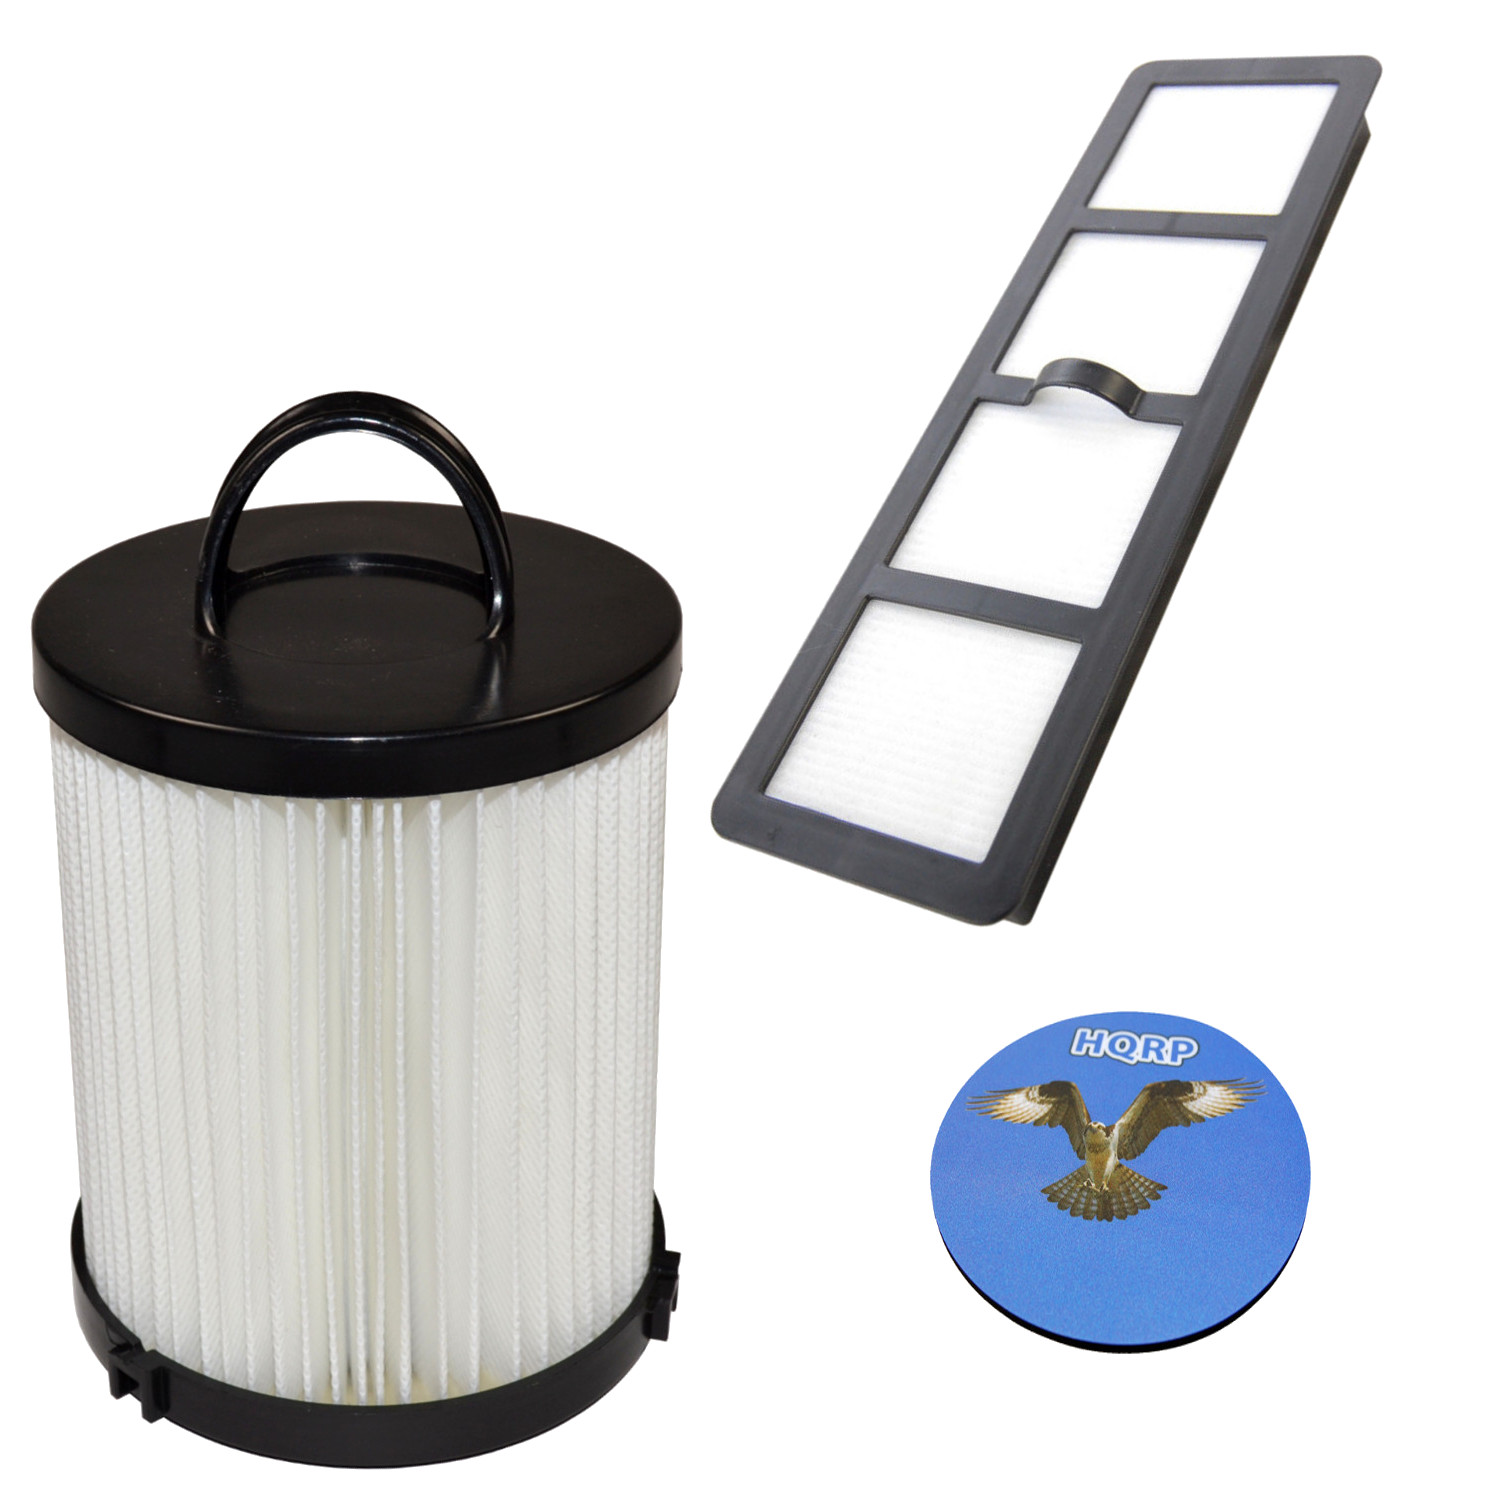 HQRP Dust Cup and Exhaust HEPA Filters for Eureka AirSpeed AS1001AE, AS1001AX, AS1000A, AS1001A Upright Vac Vacuum + HQRP Coaster - image 6 of 6